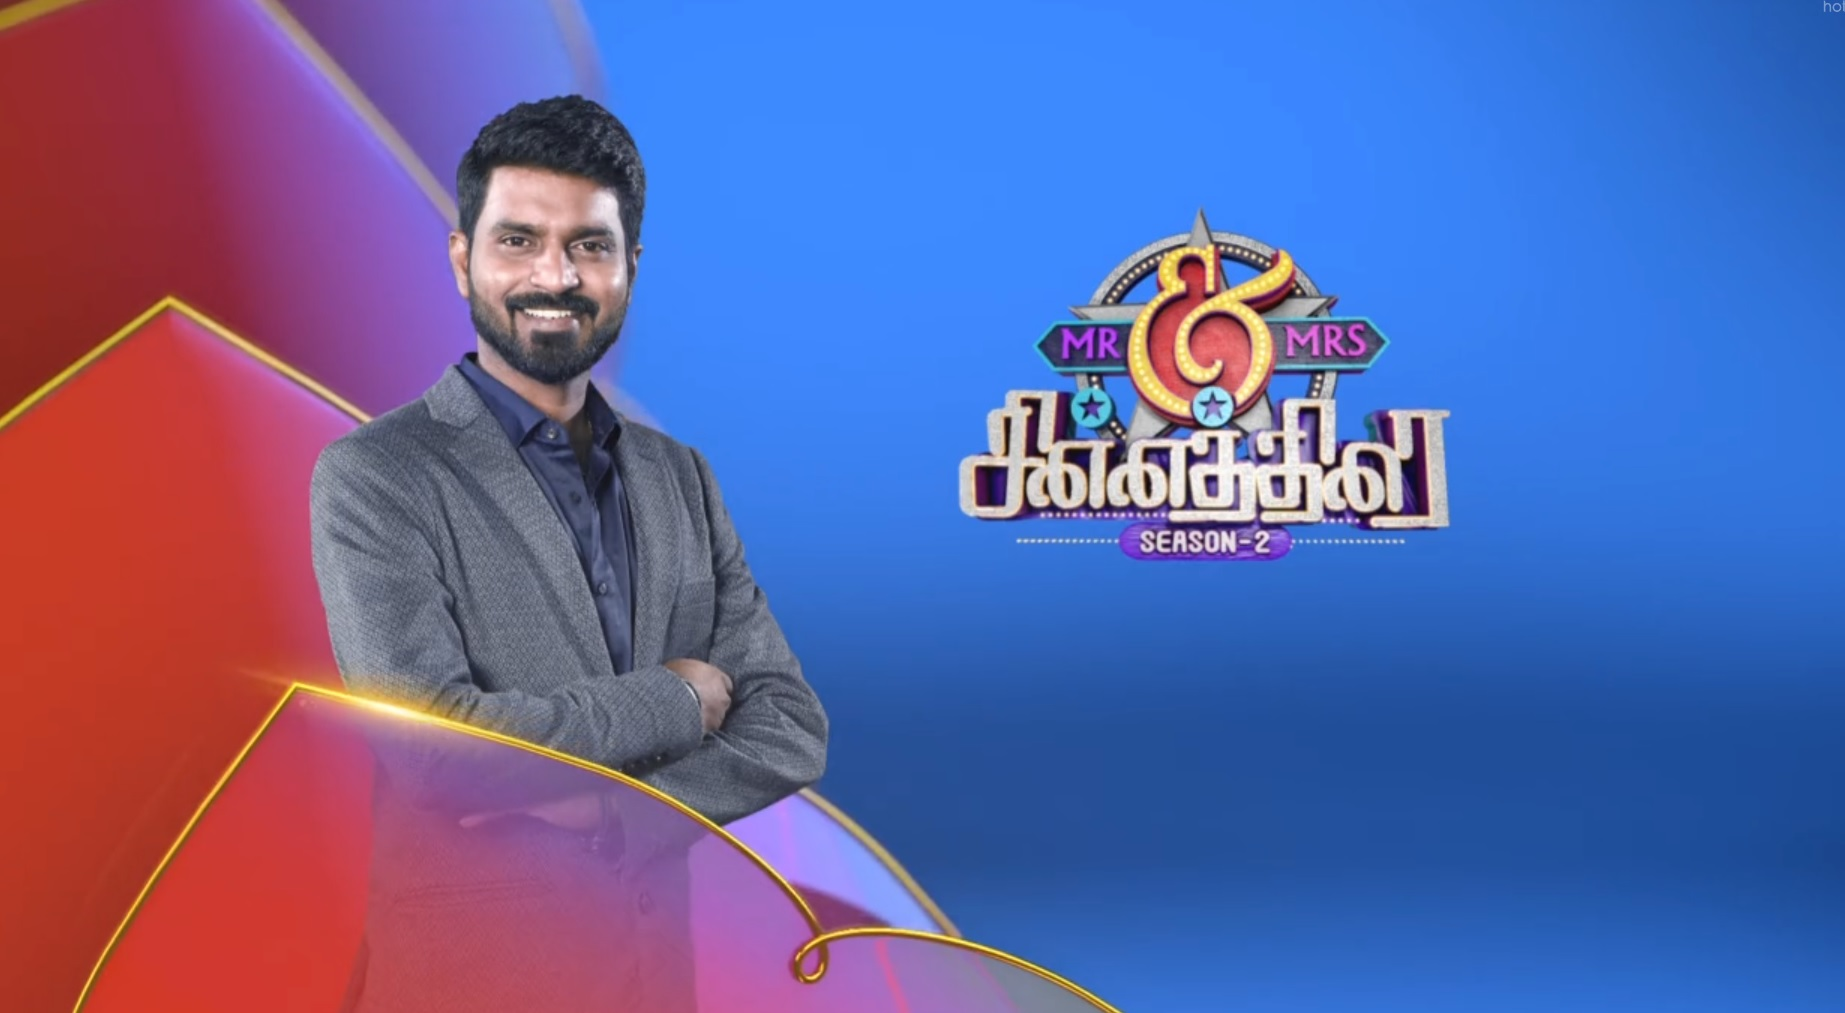 09-08-2020 - Mr & Mrs Chinnathirai 2- Vijay tv Shows